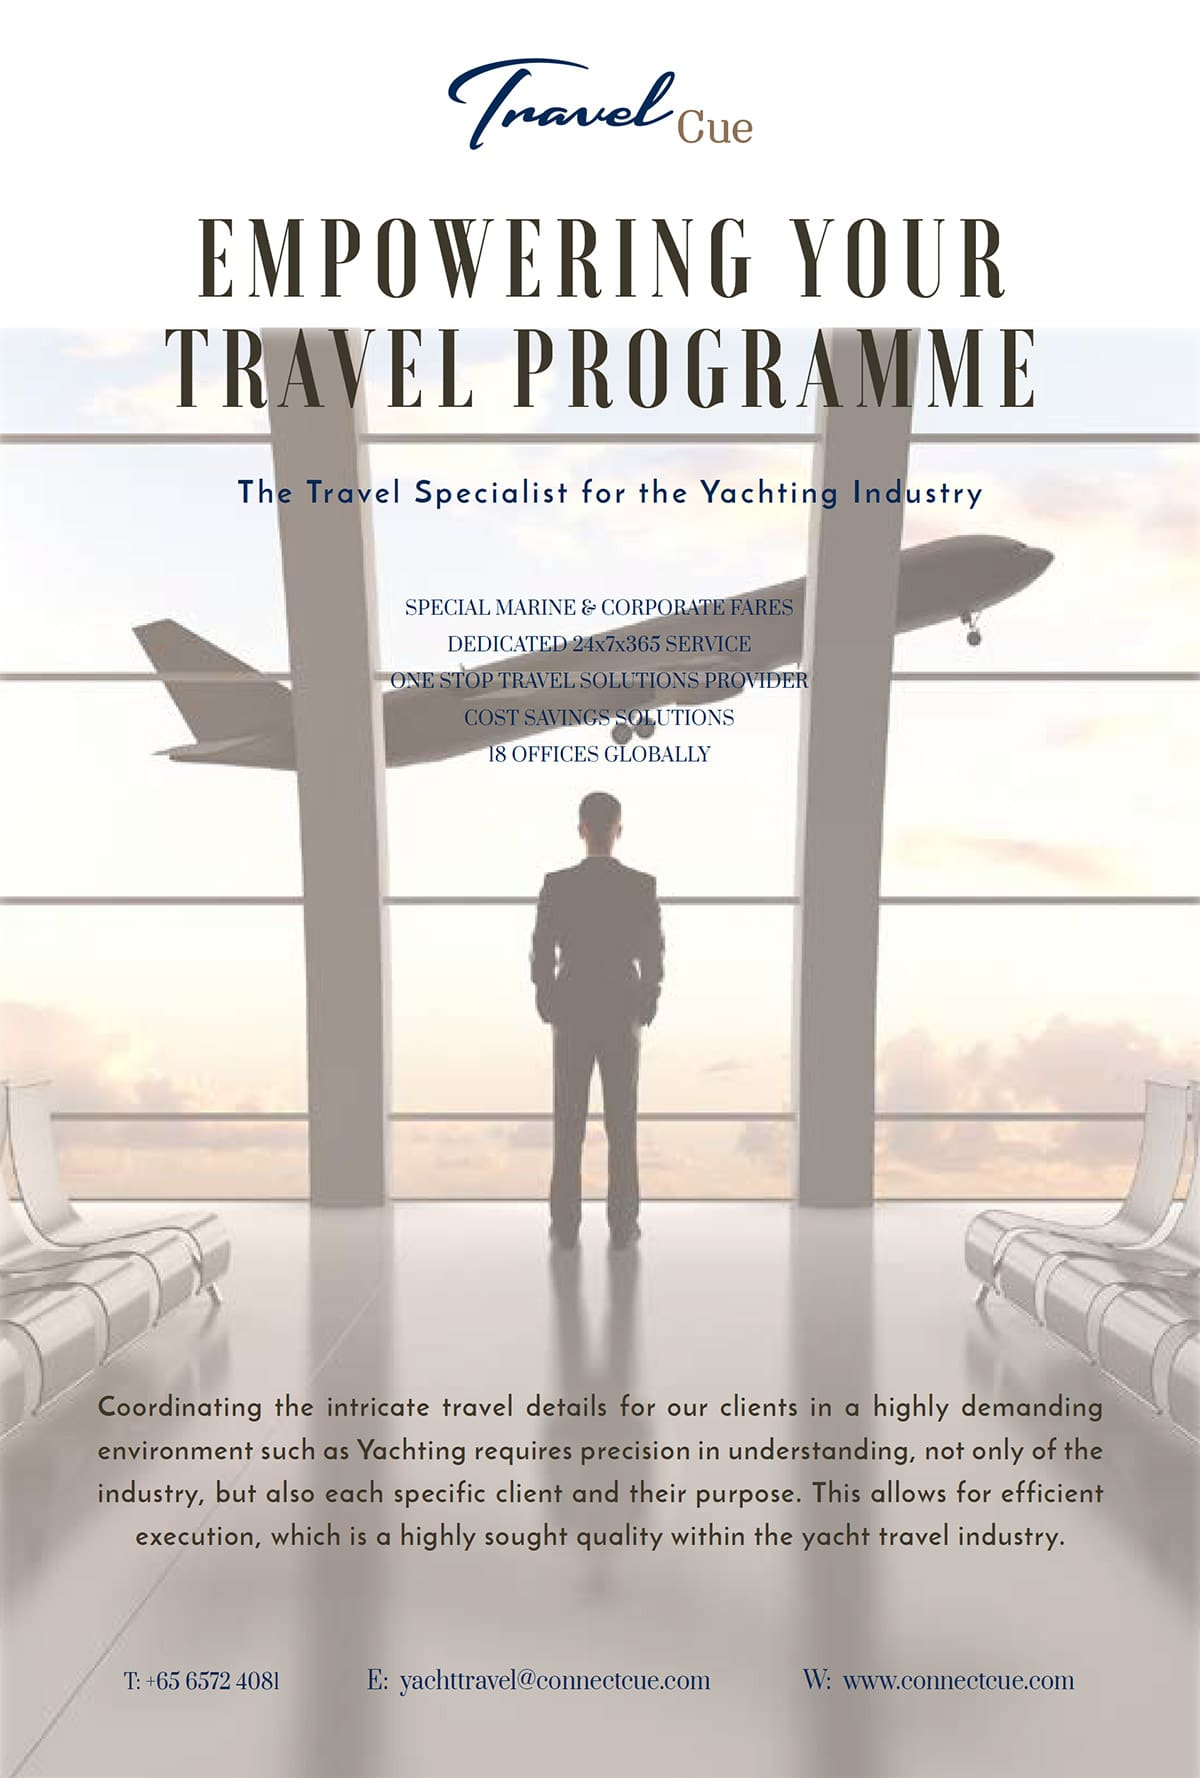 Empowering Your Travel Programme